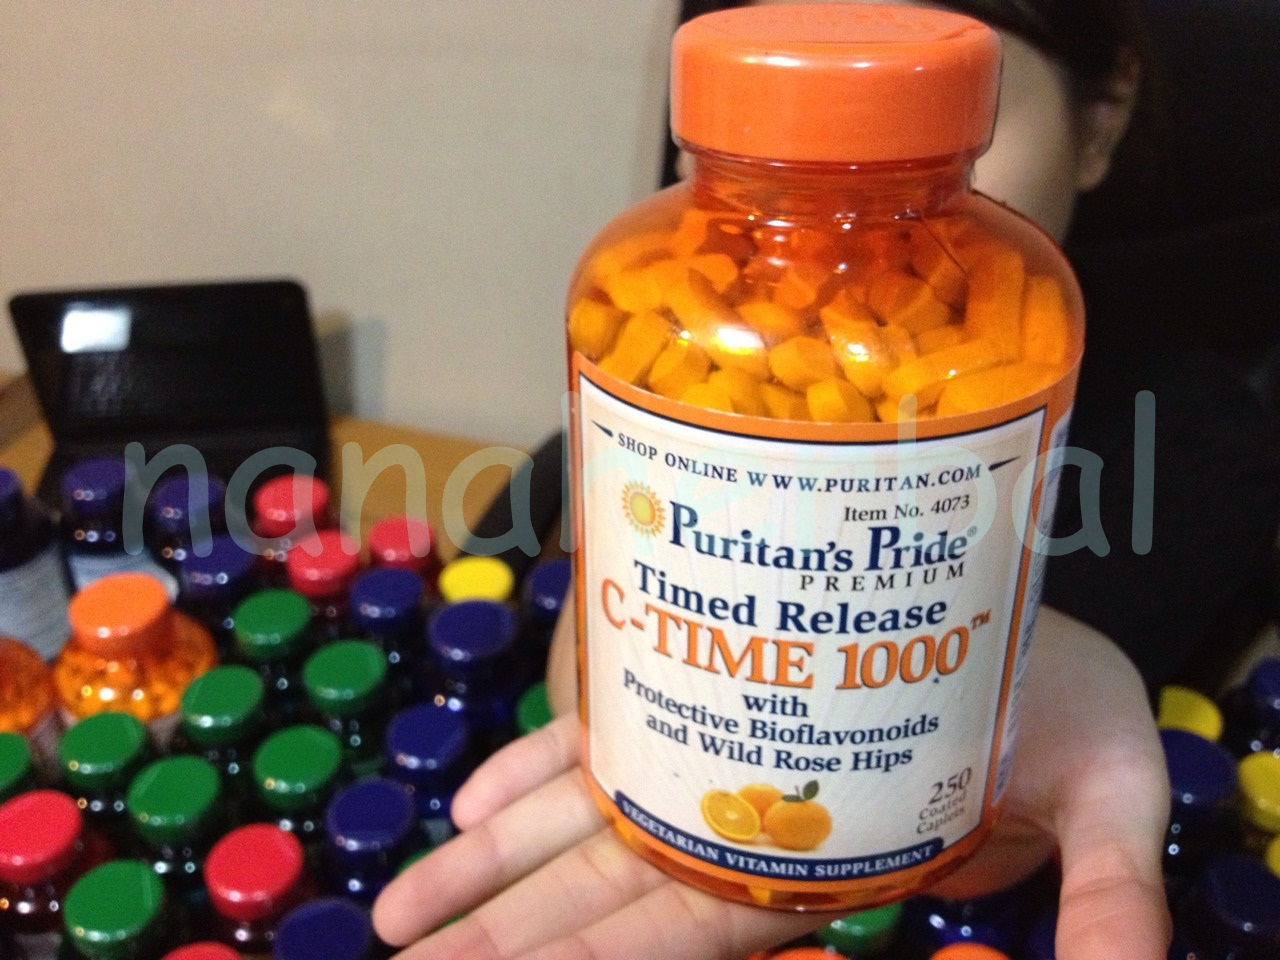 c timed release 1000 mg with protective bioflavonoids and wild rose hips 250 coated caplets